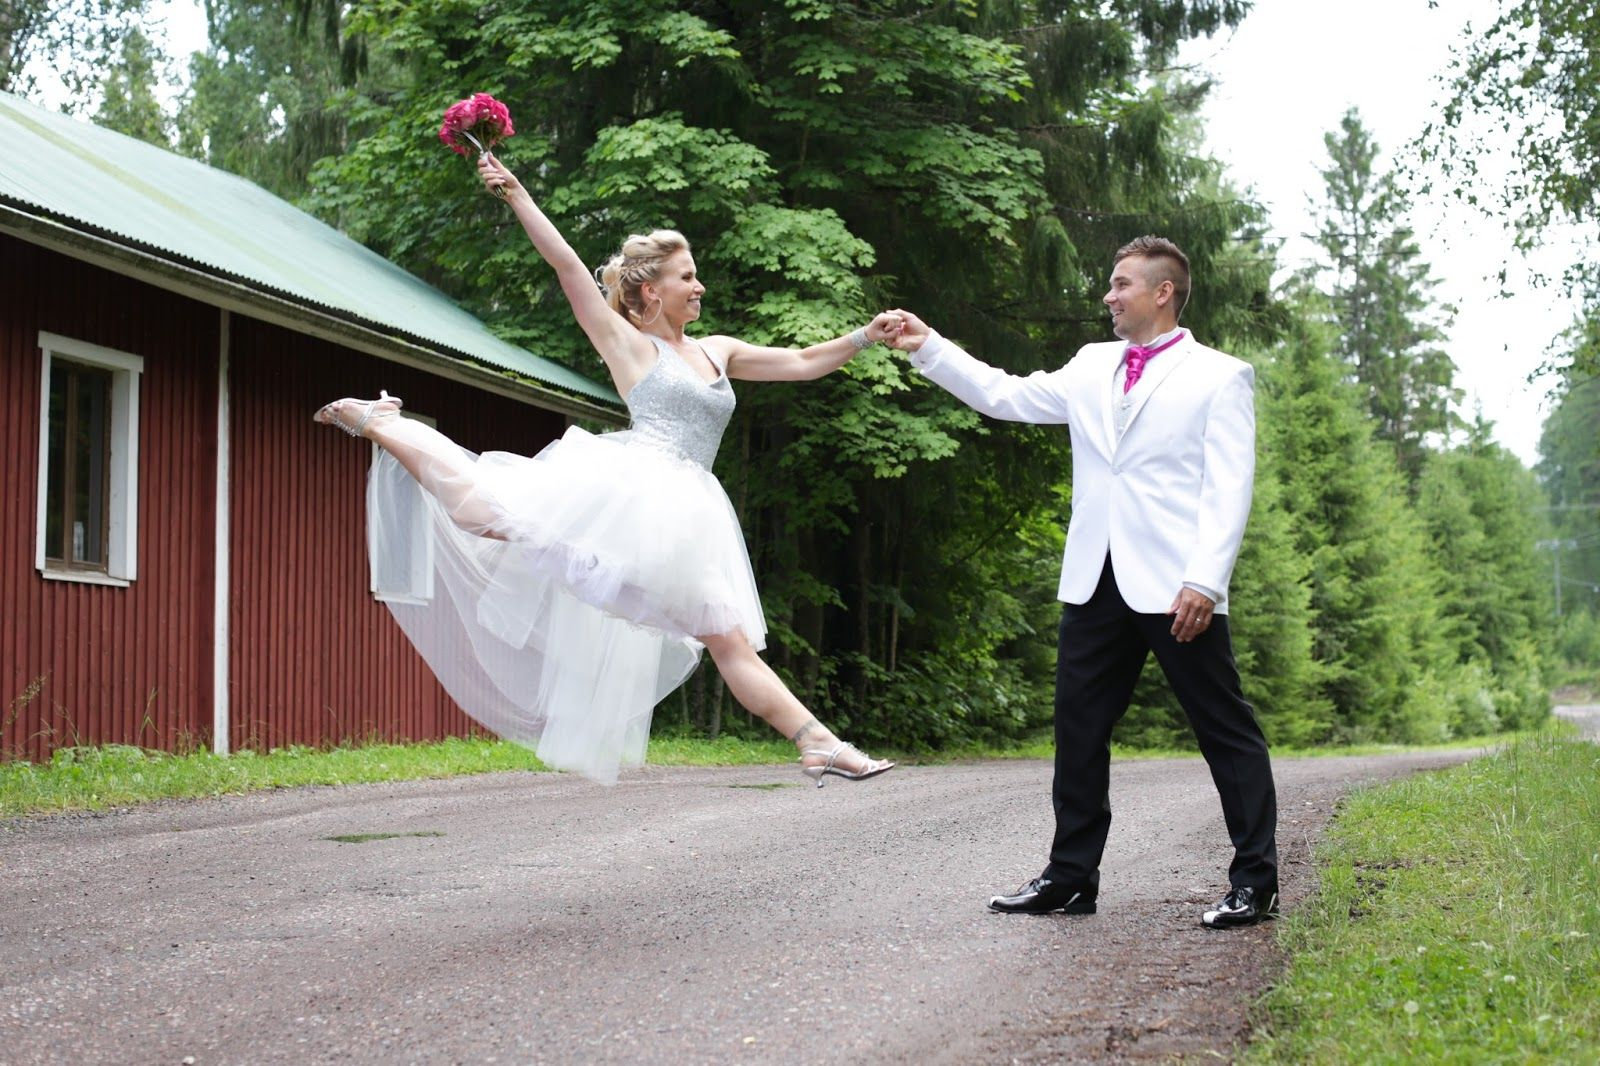 Real wedding in Finland. Dress made by Pukuni (www.pukuni.fi). Wedding dress with silver sequin top, tulle hem, short front, long back.